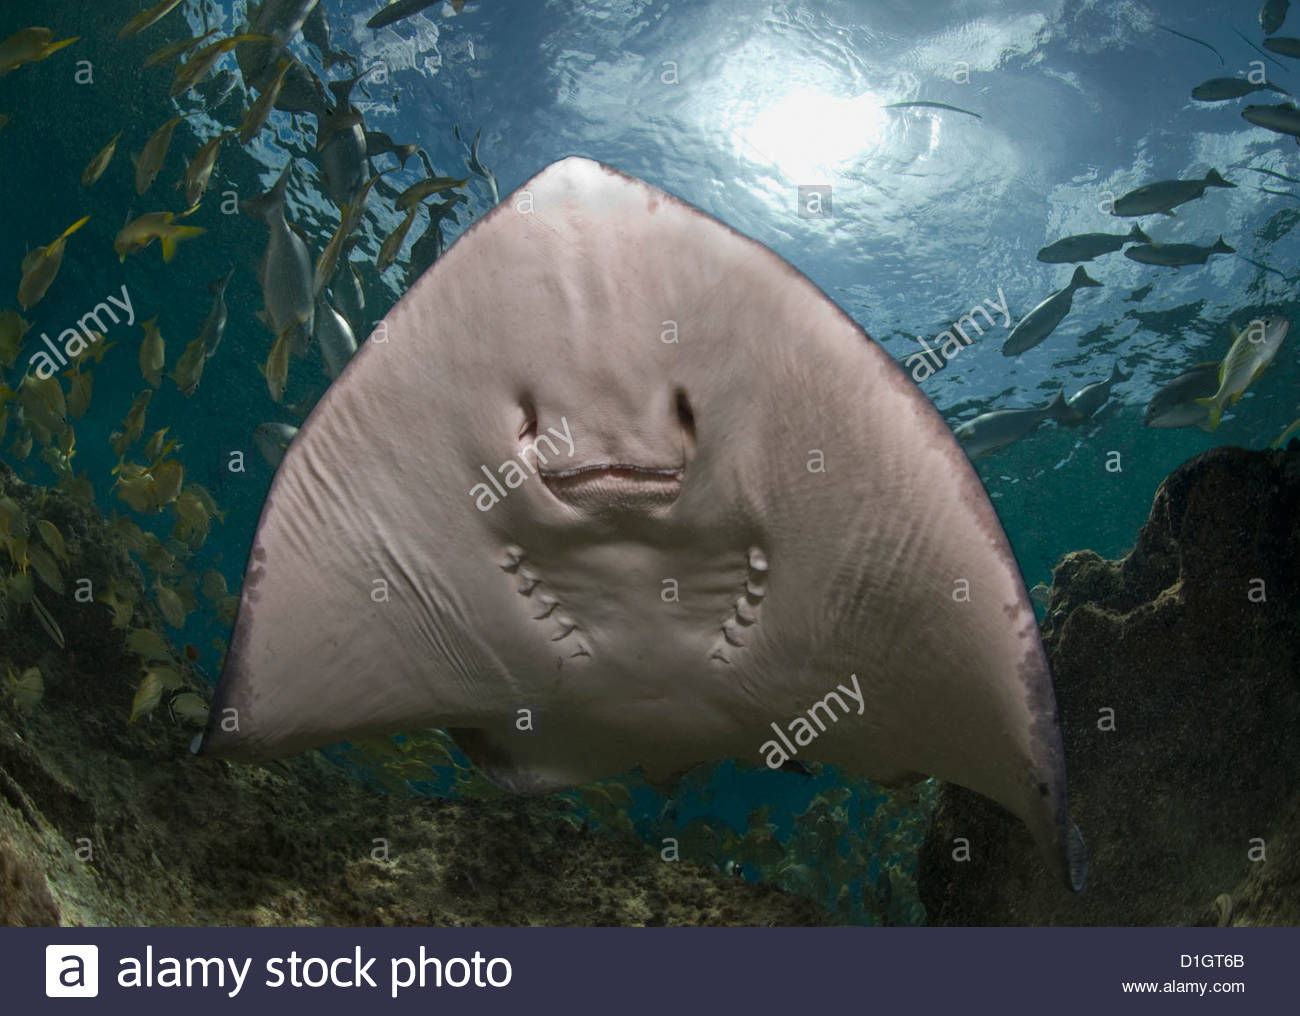 Stingray (Dasyatis thetidis) from below with the sun behind, Cozumel, Mexico, Caribbean, North America - Stock Image